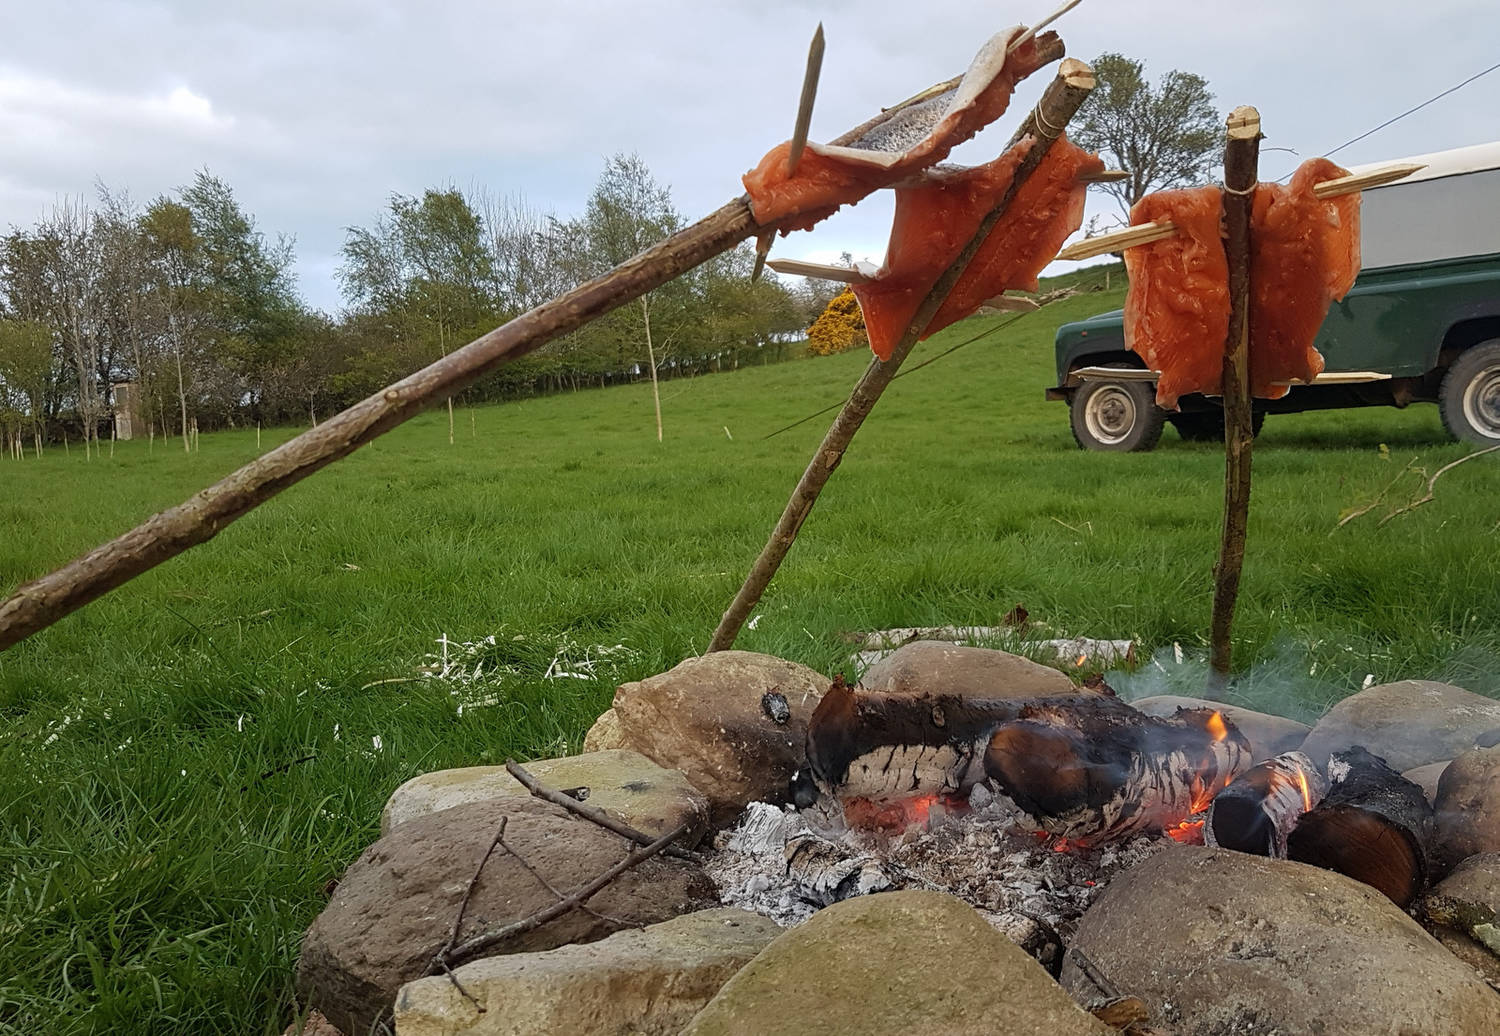 A photograph of trout being cooked on sticks over an outdoor fire